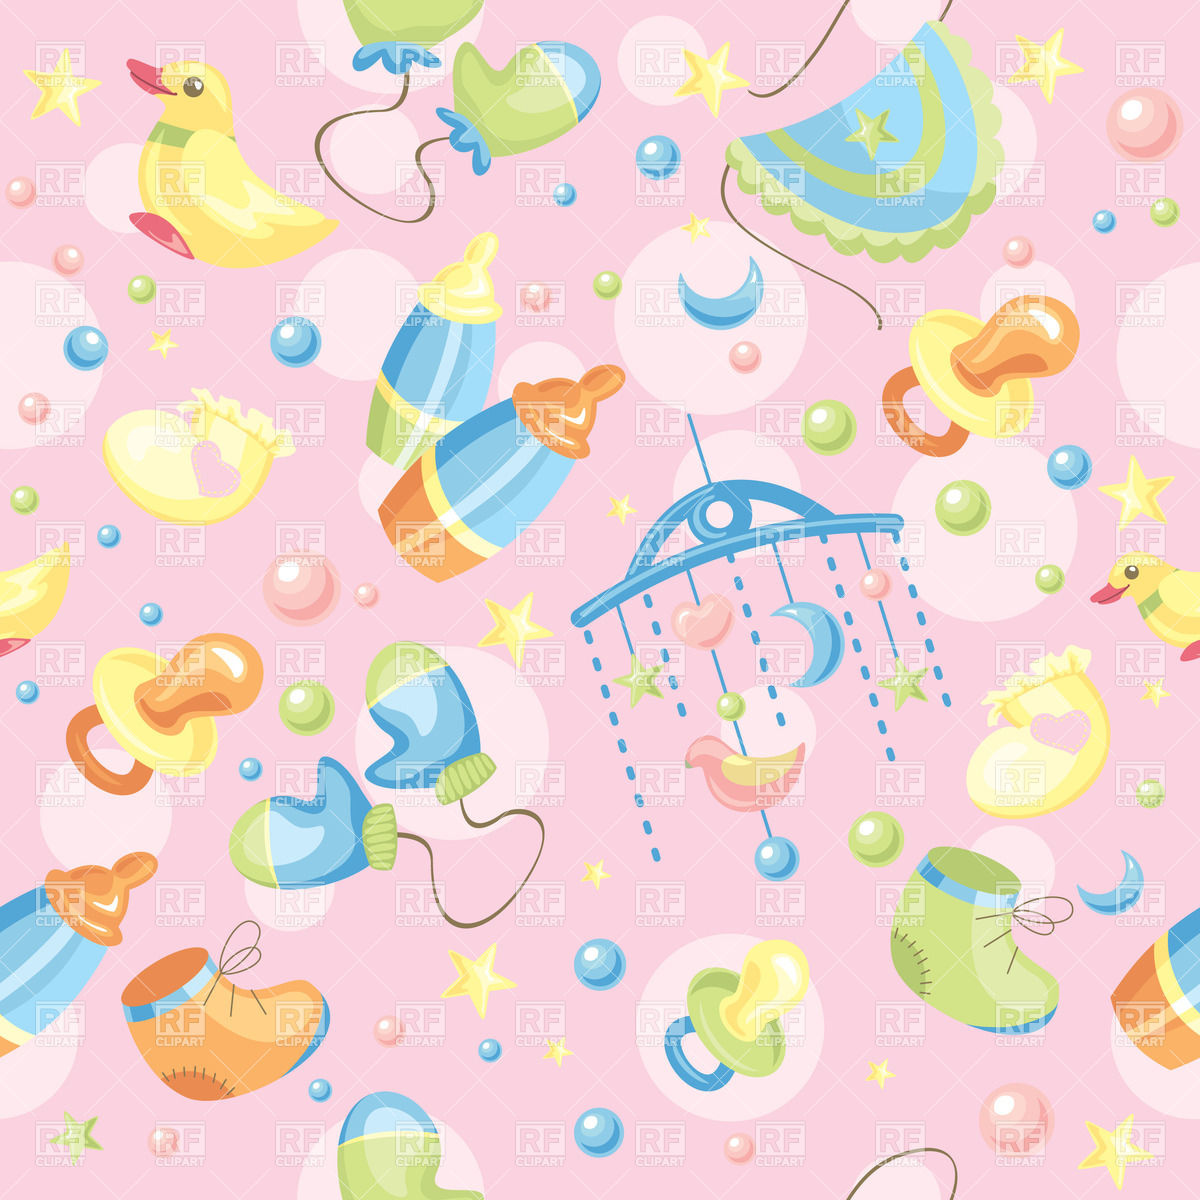 Seamless pink background with baby toys and accessories download 1200x1200